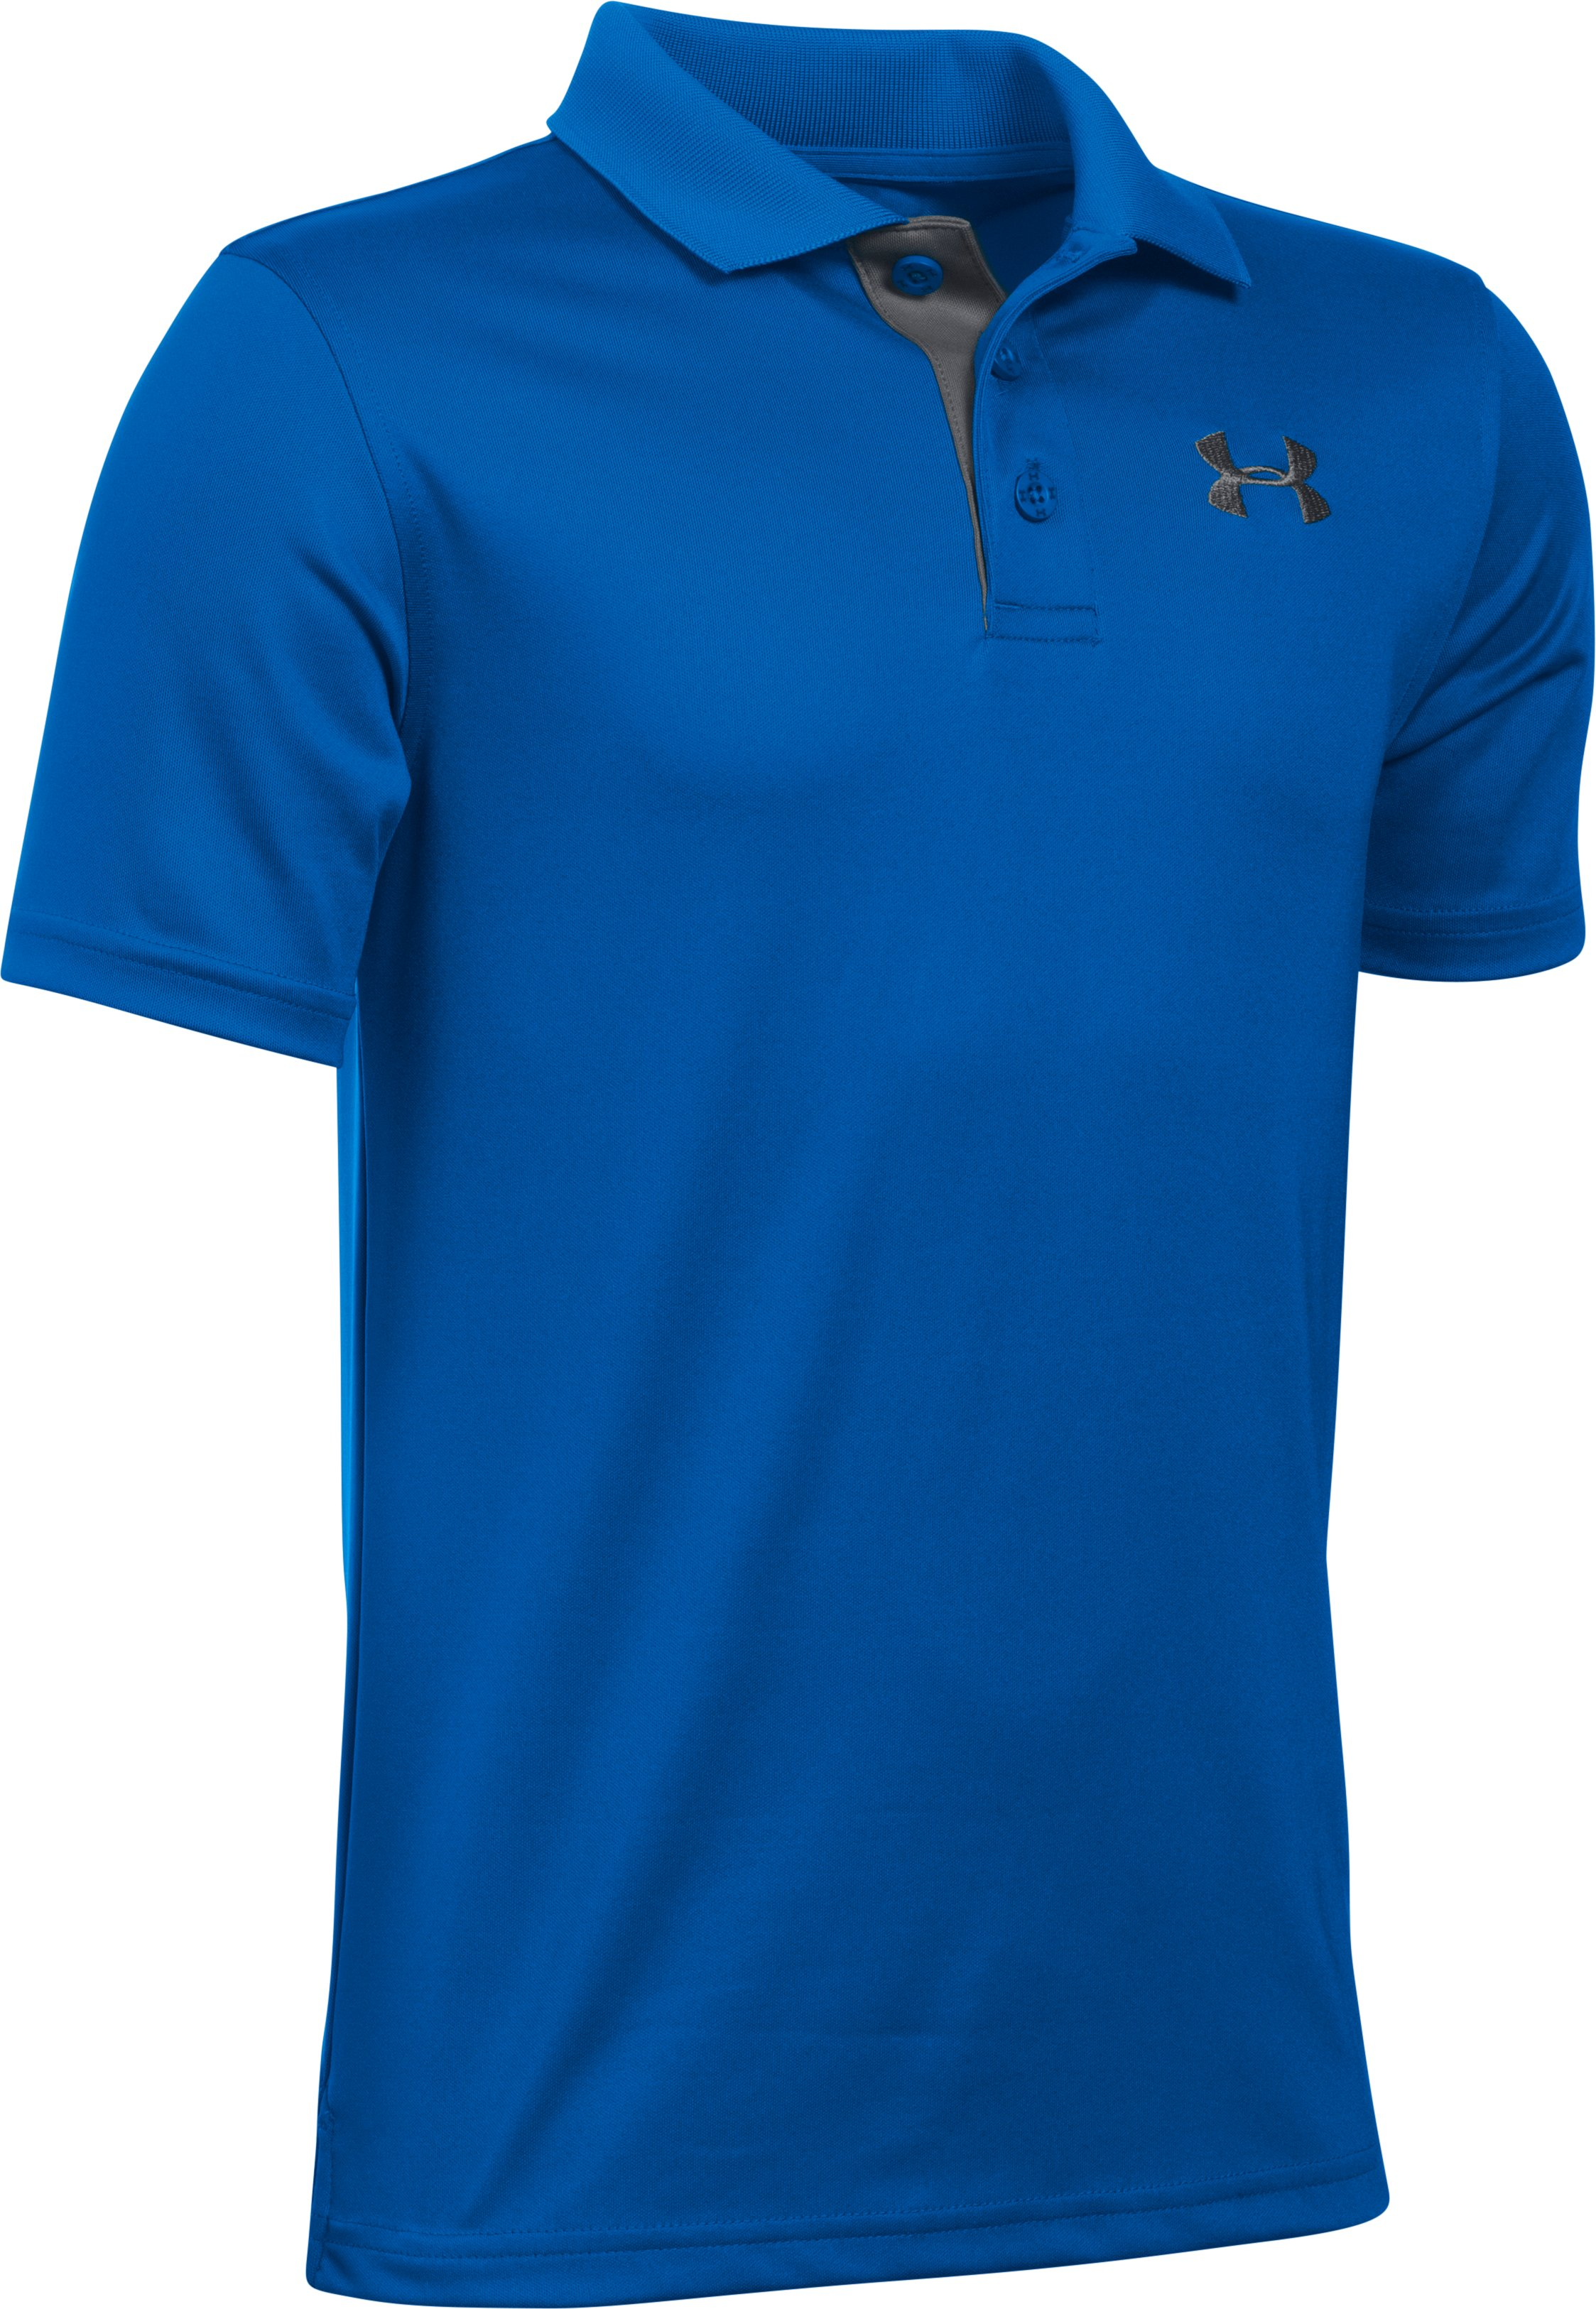 Boys' UA Match Play Polo, ULTRA BLUE, zoomed image